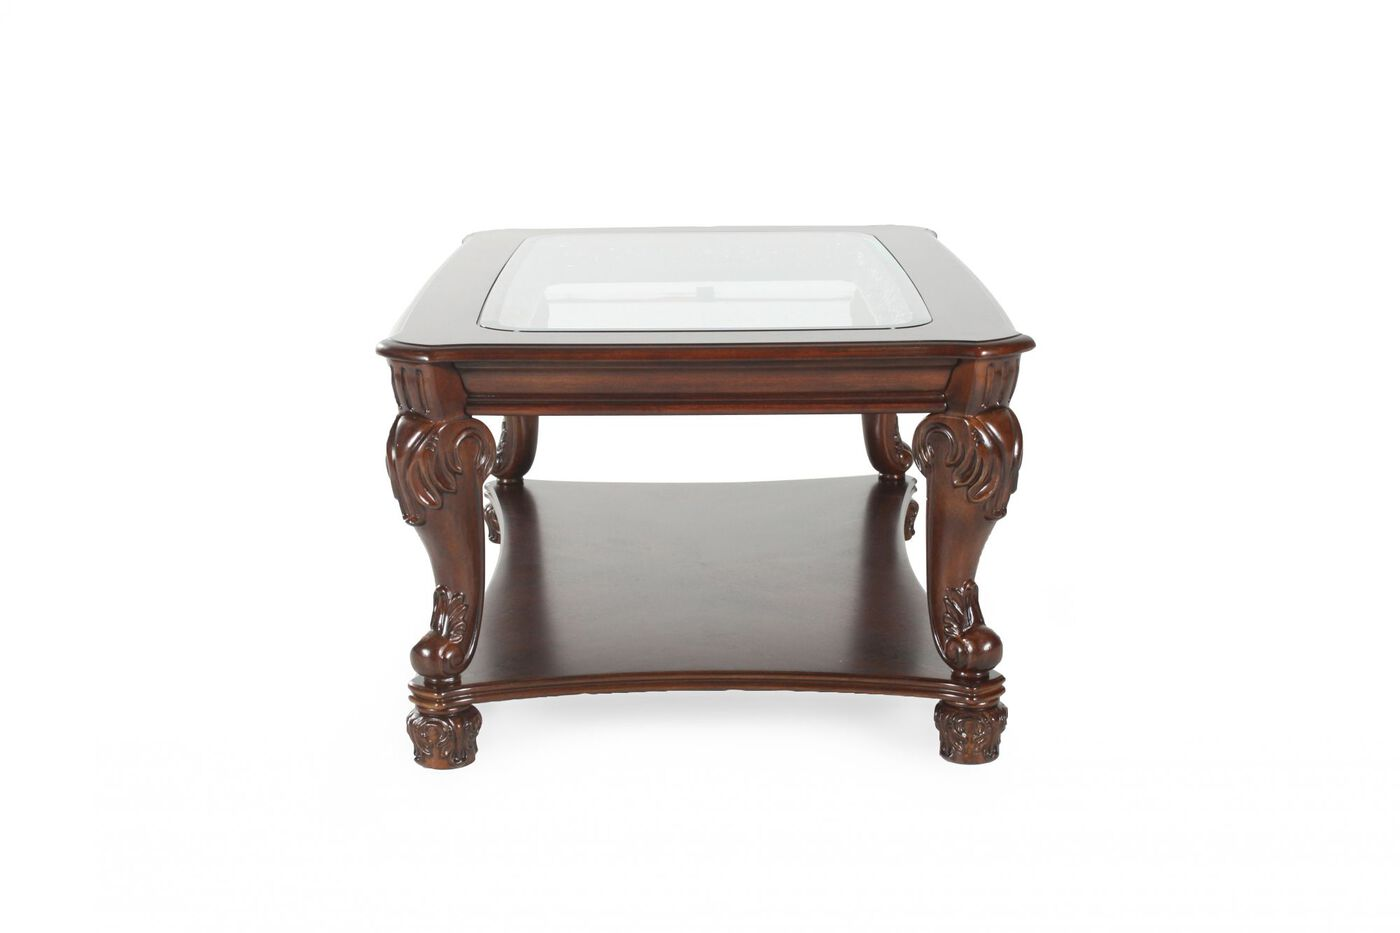 Glass Insert Traditional Cocktail Table In Dark Brown